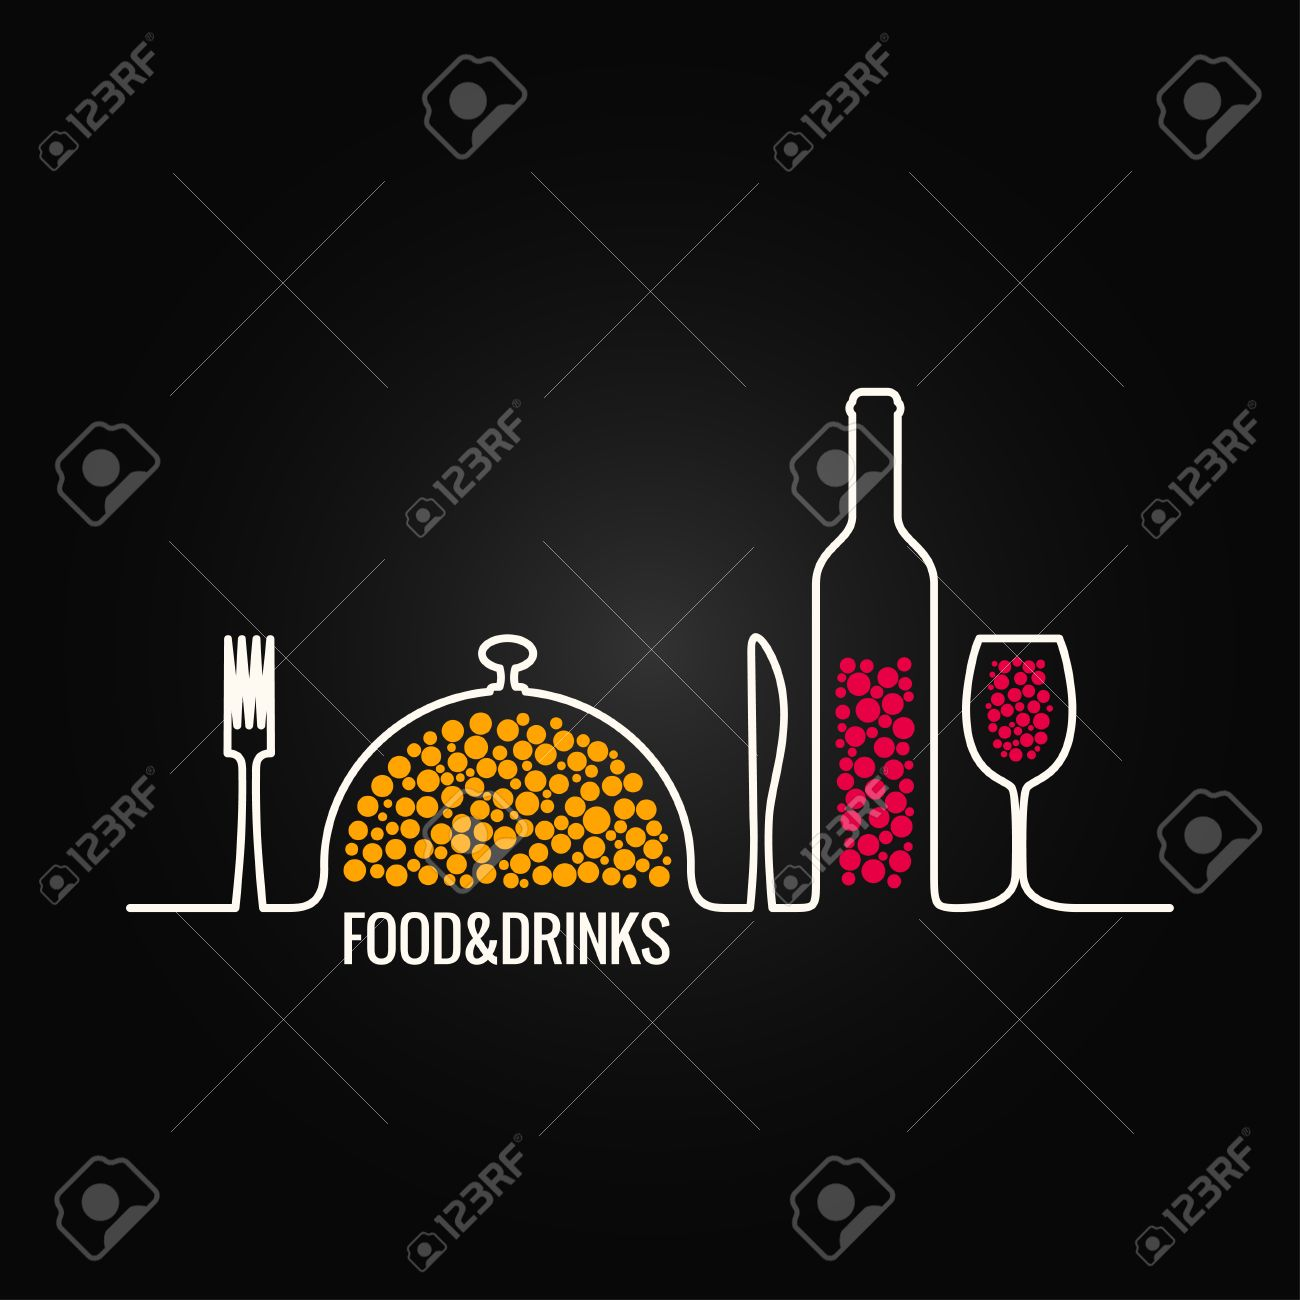 food and drink menu background royalty free cliparts, vectors, and